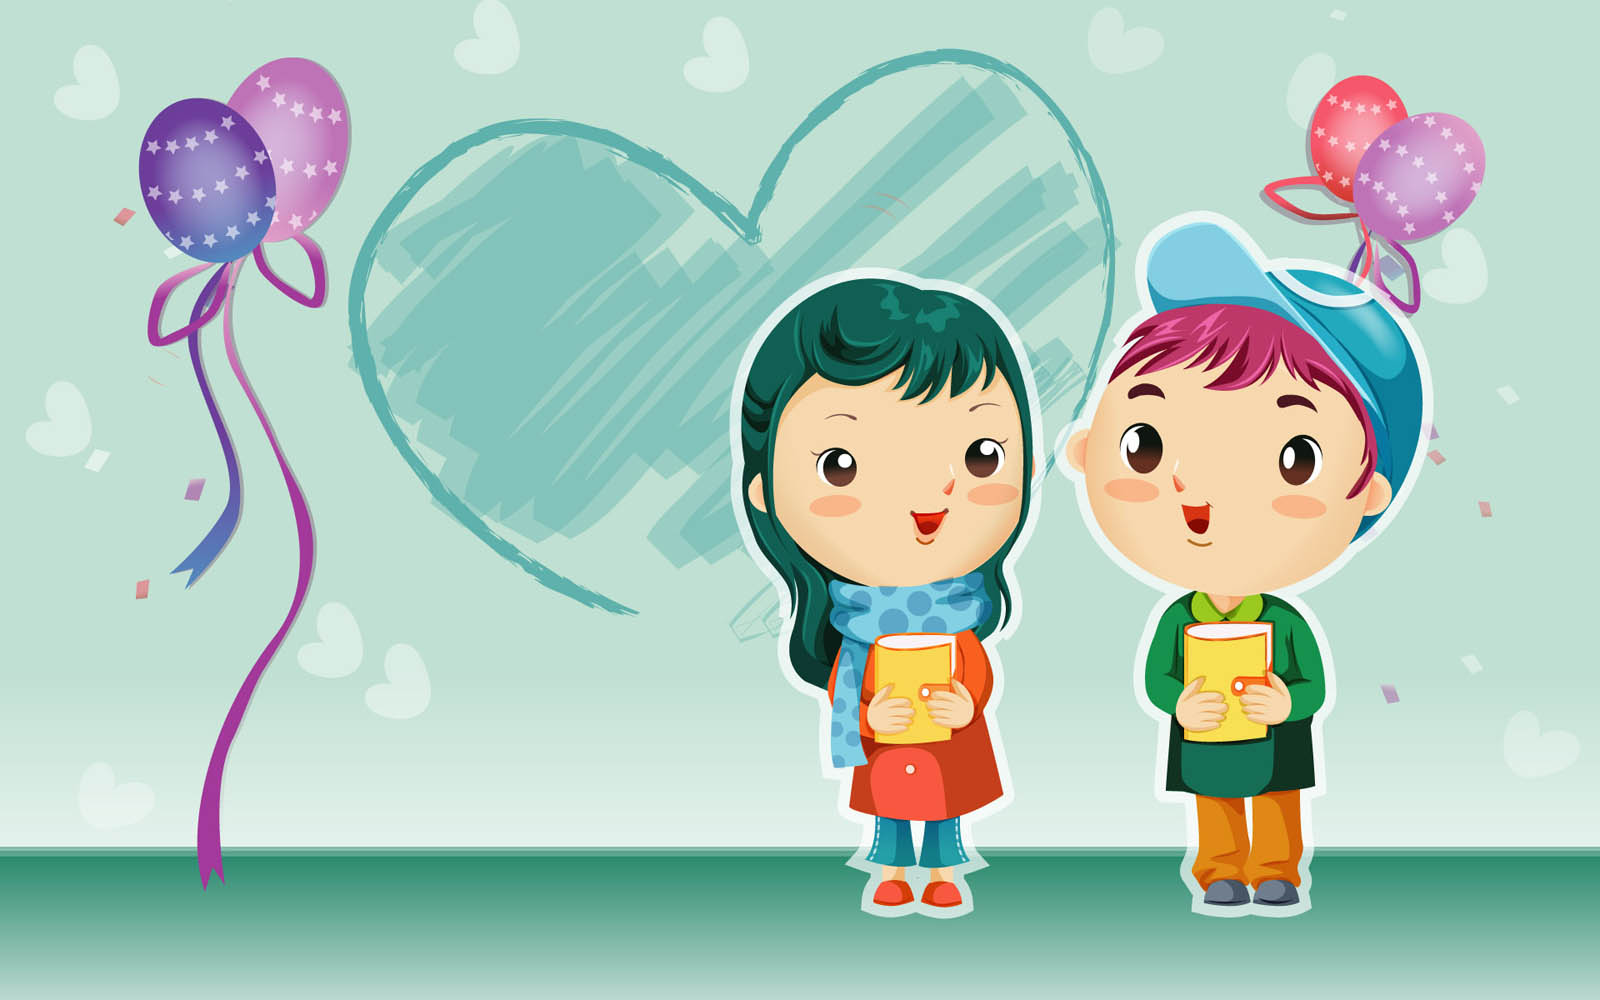 cartoon Love Wallpapers For Mobile Phones : wallpapers: cartoon Love Wallpapers